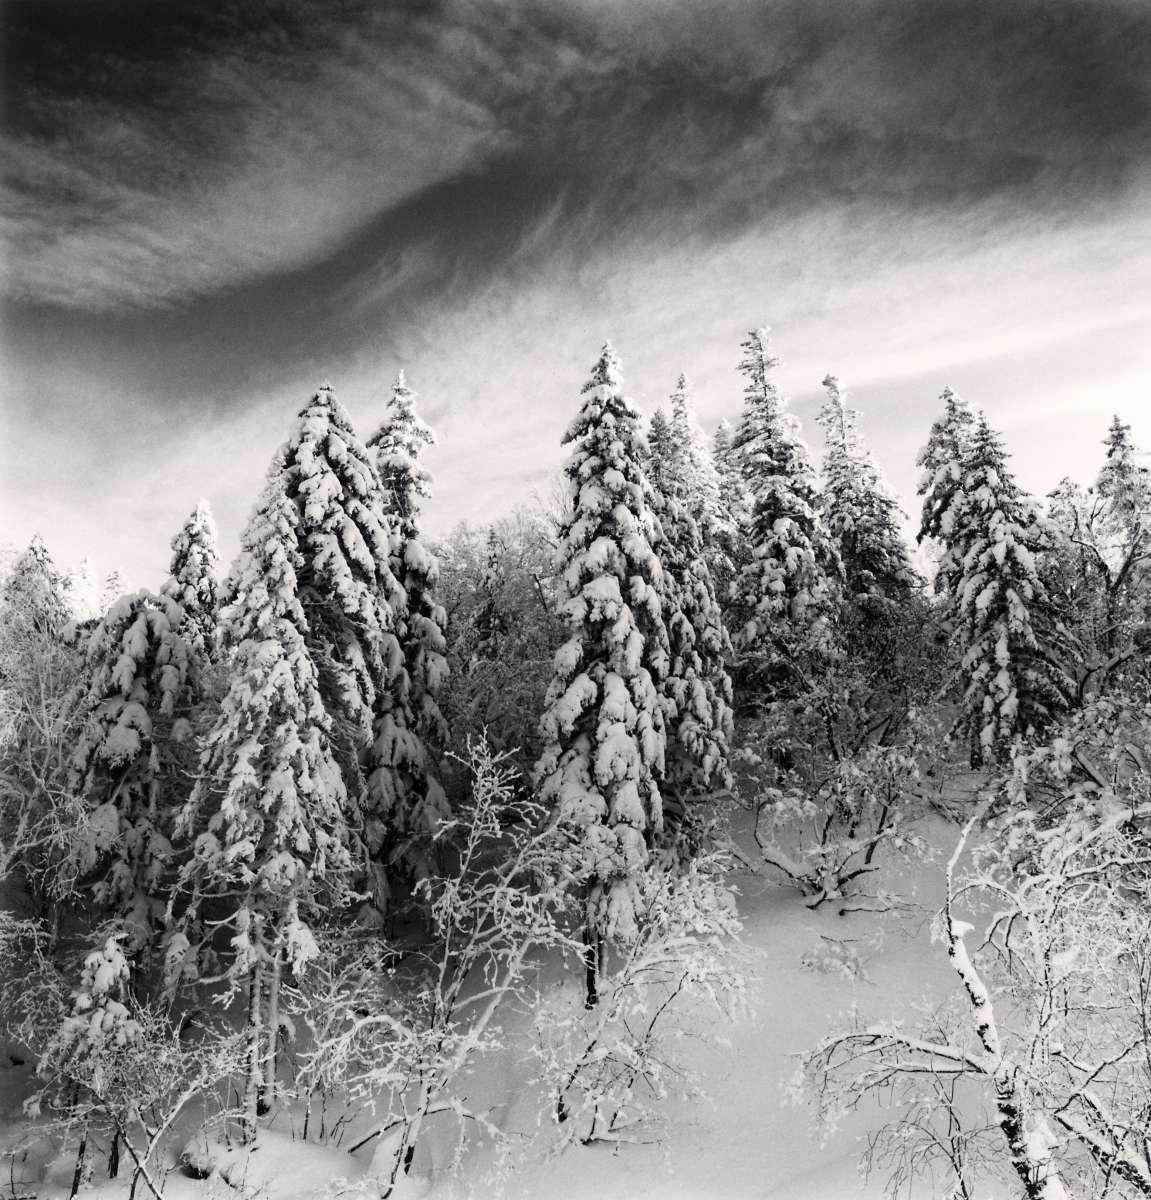 Michael Kenna Works from 2011 - 2012